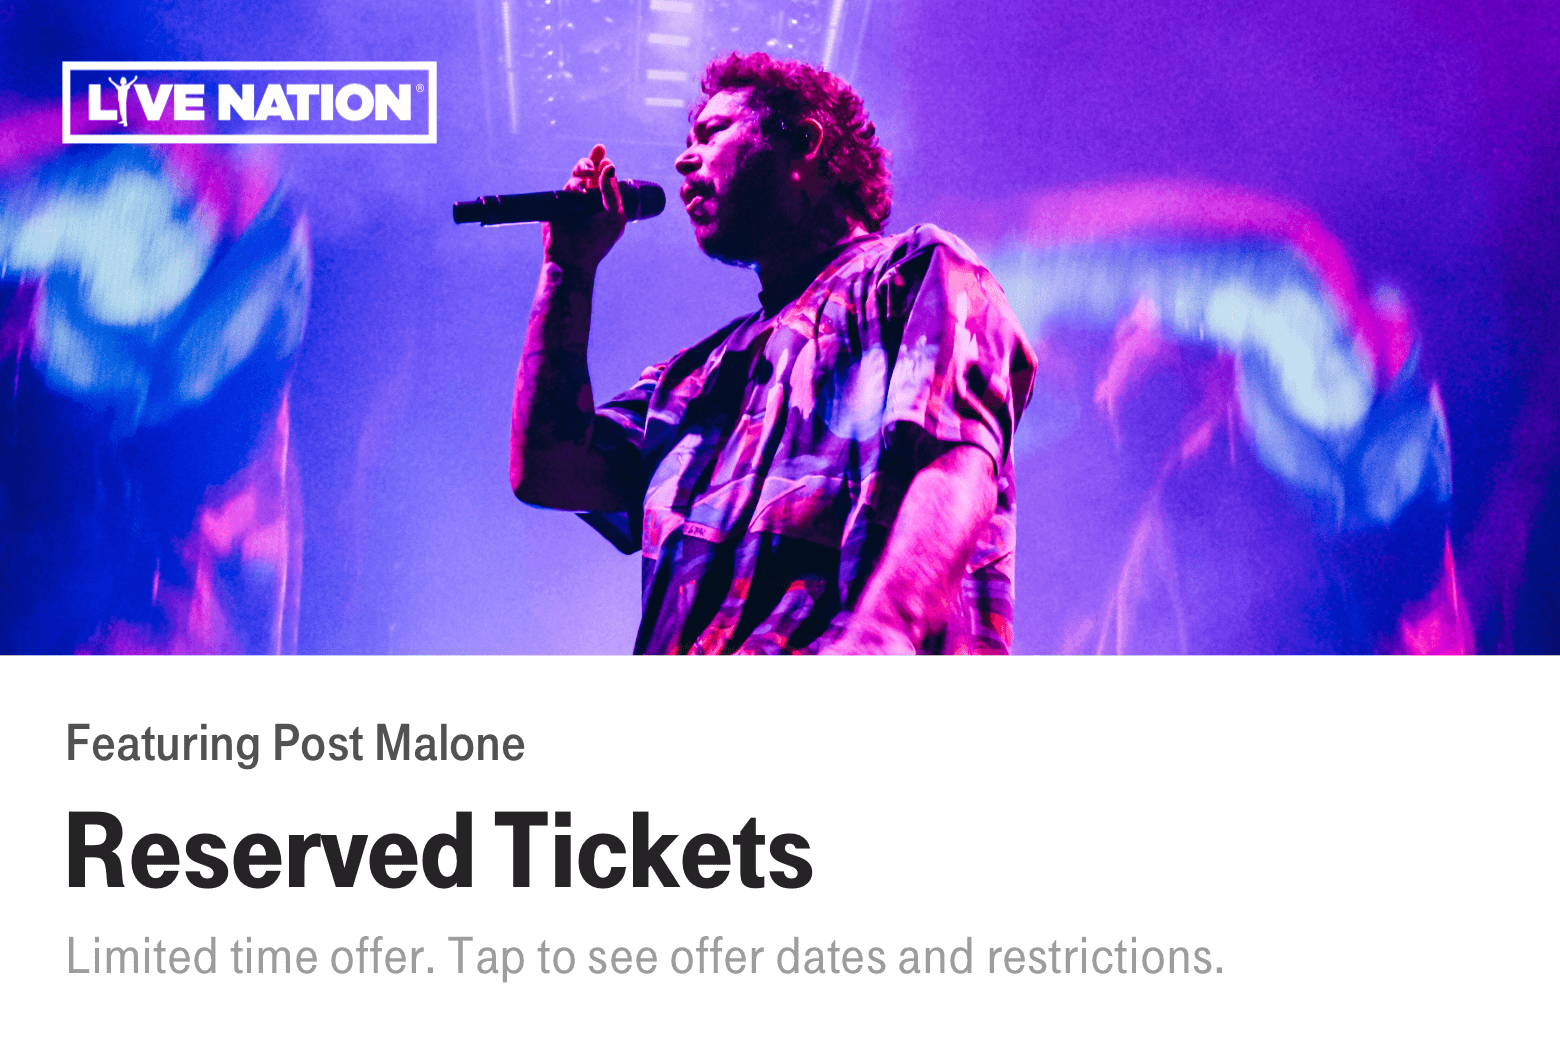 Live Nation. Featuring Post Malone. Reserved Tickets. Limited time offer. Tap to see offer dates and restrictions.